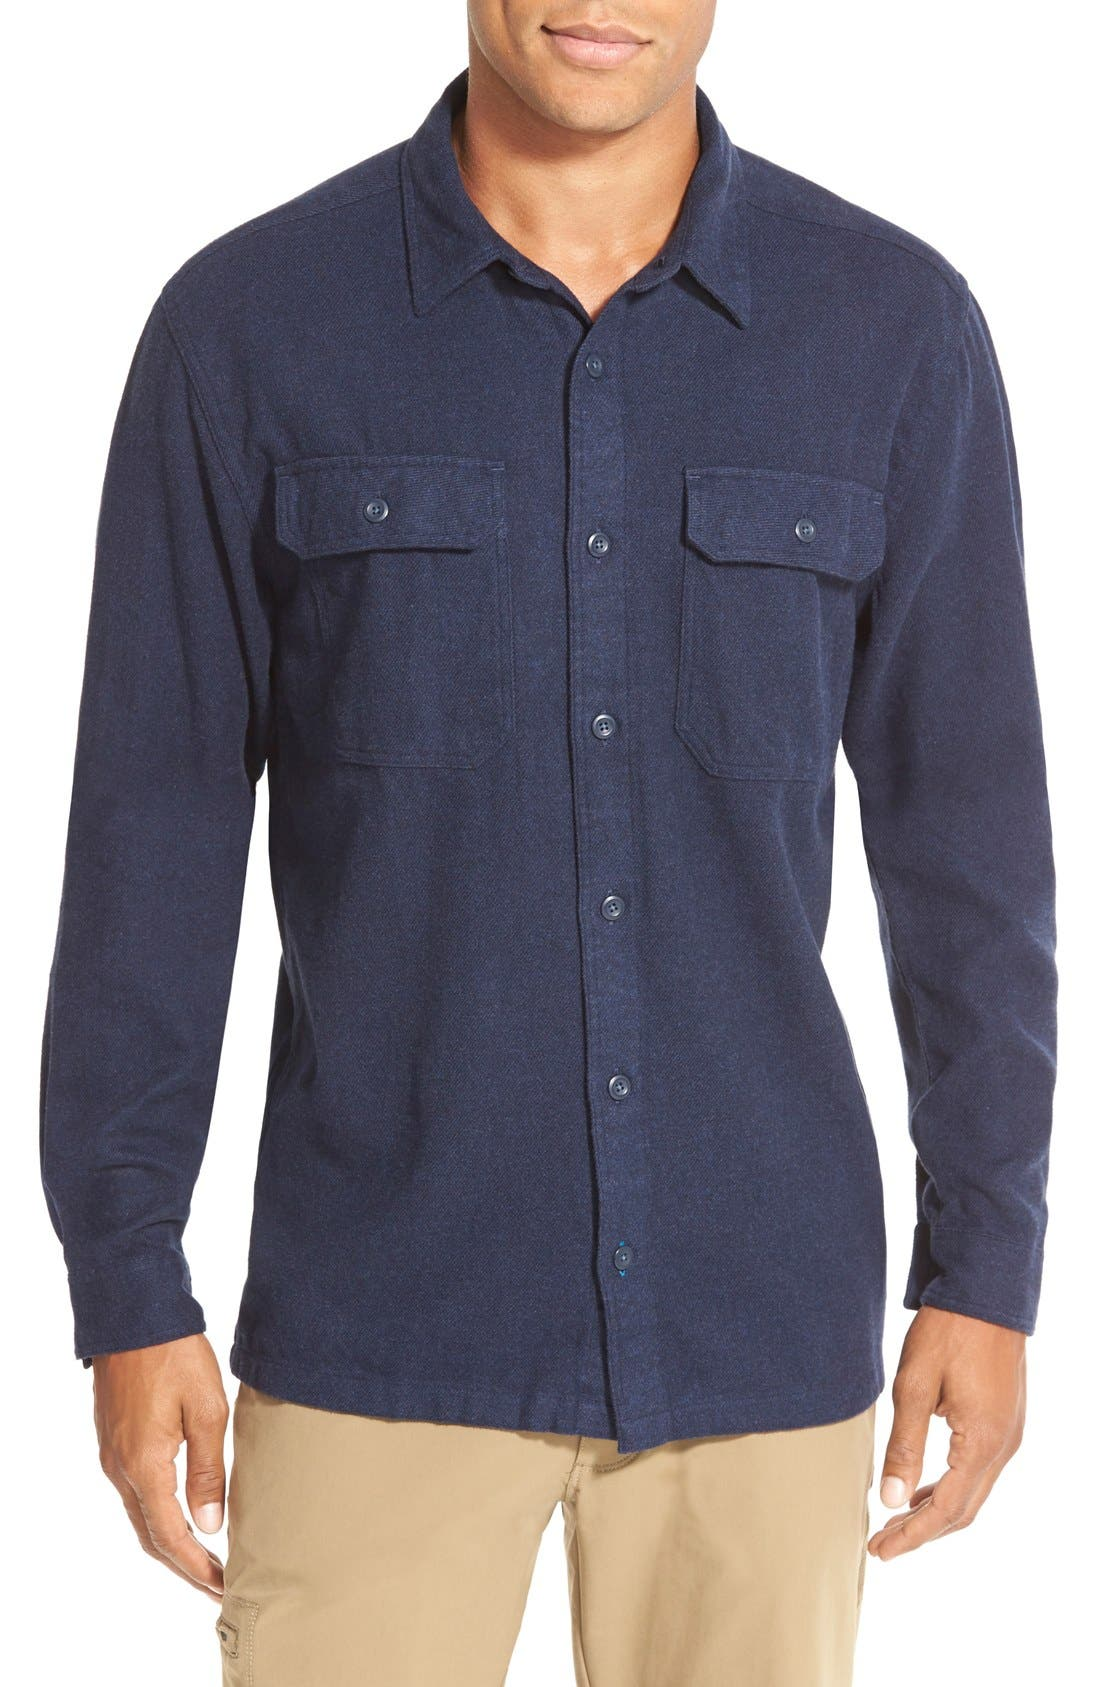 'Fjord' Regular Fit Organic Cotton Flannel Shirt,                         Main,                         color, Migration Plaid: Andes Blue